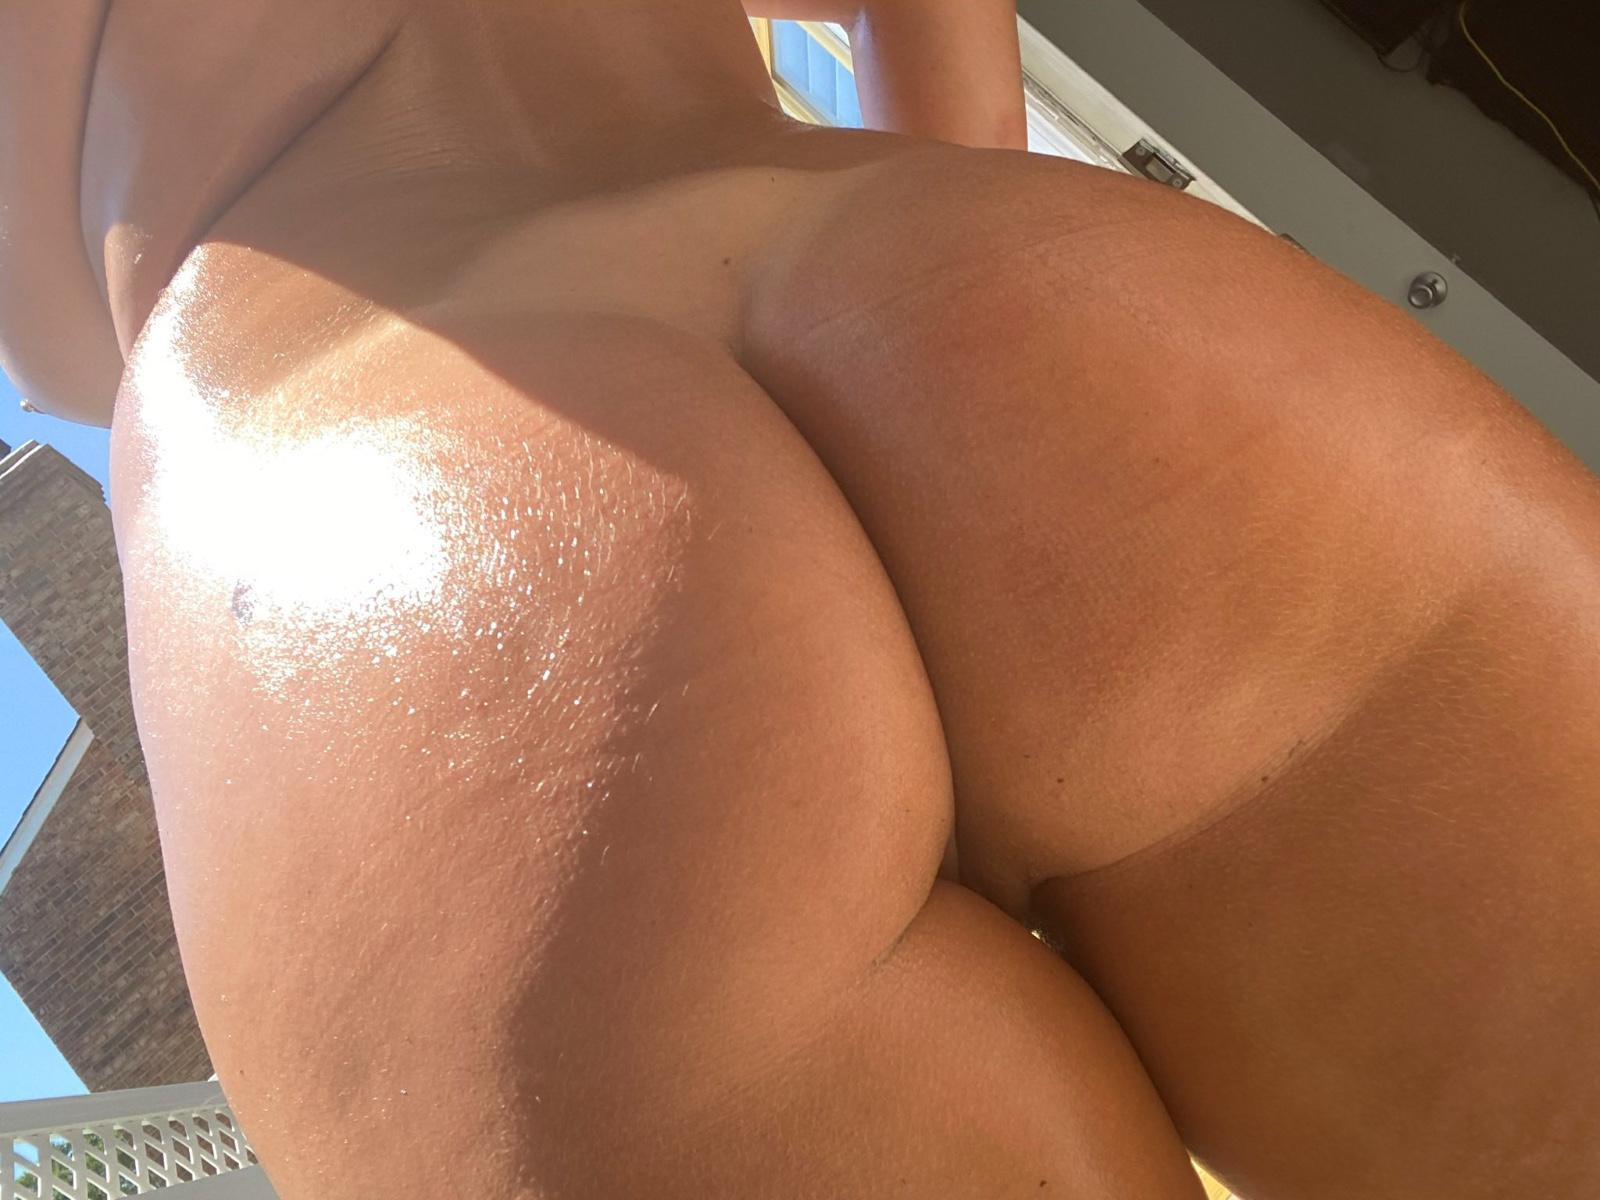 I want to get down and dirty for some hot banging, naughty, fun sweet sexual exp